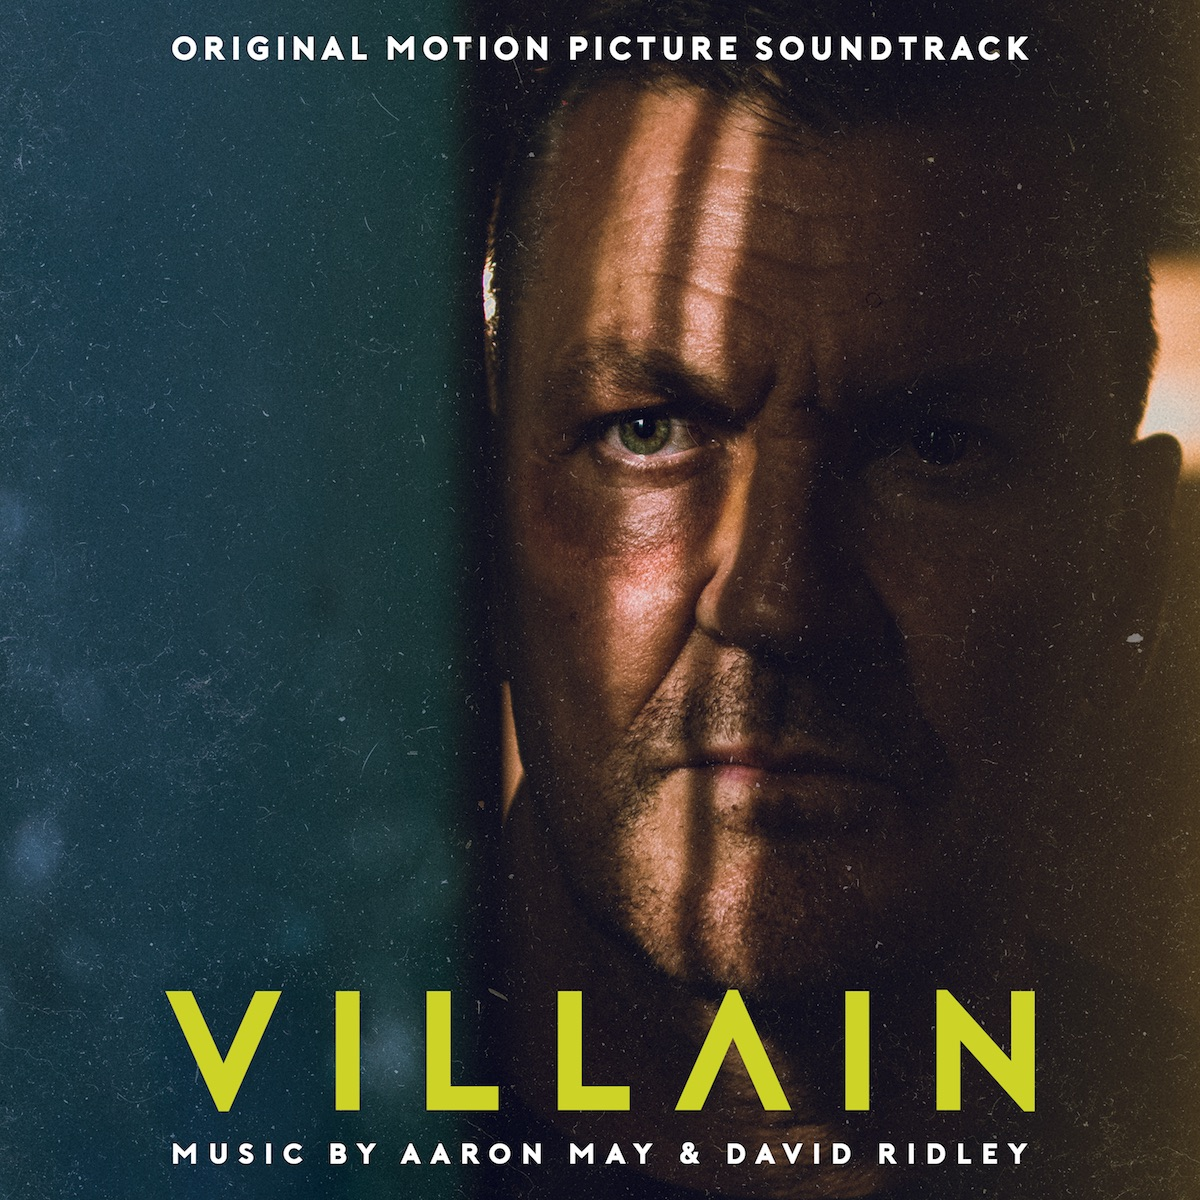 Aaron May & David Ridley - Villain OST